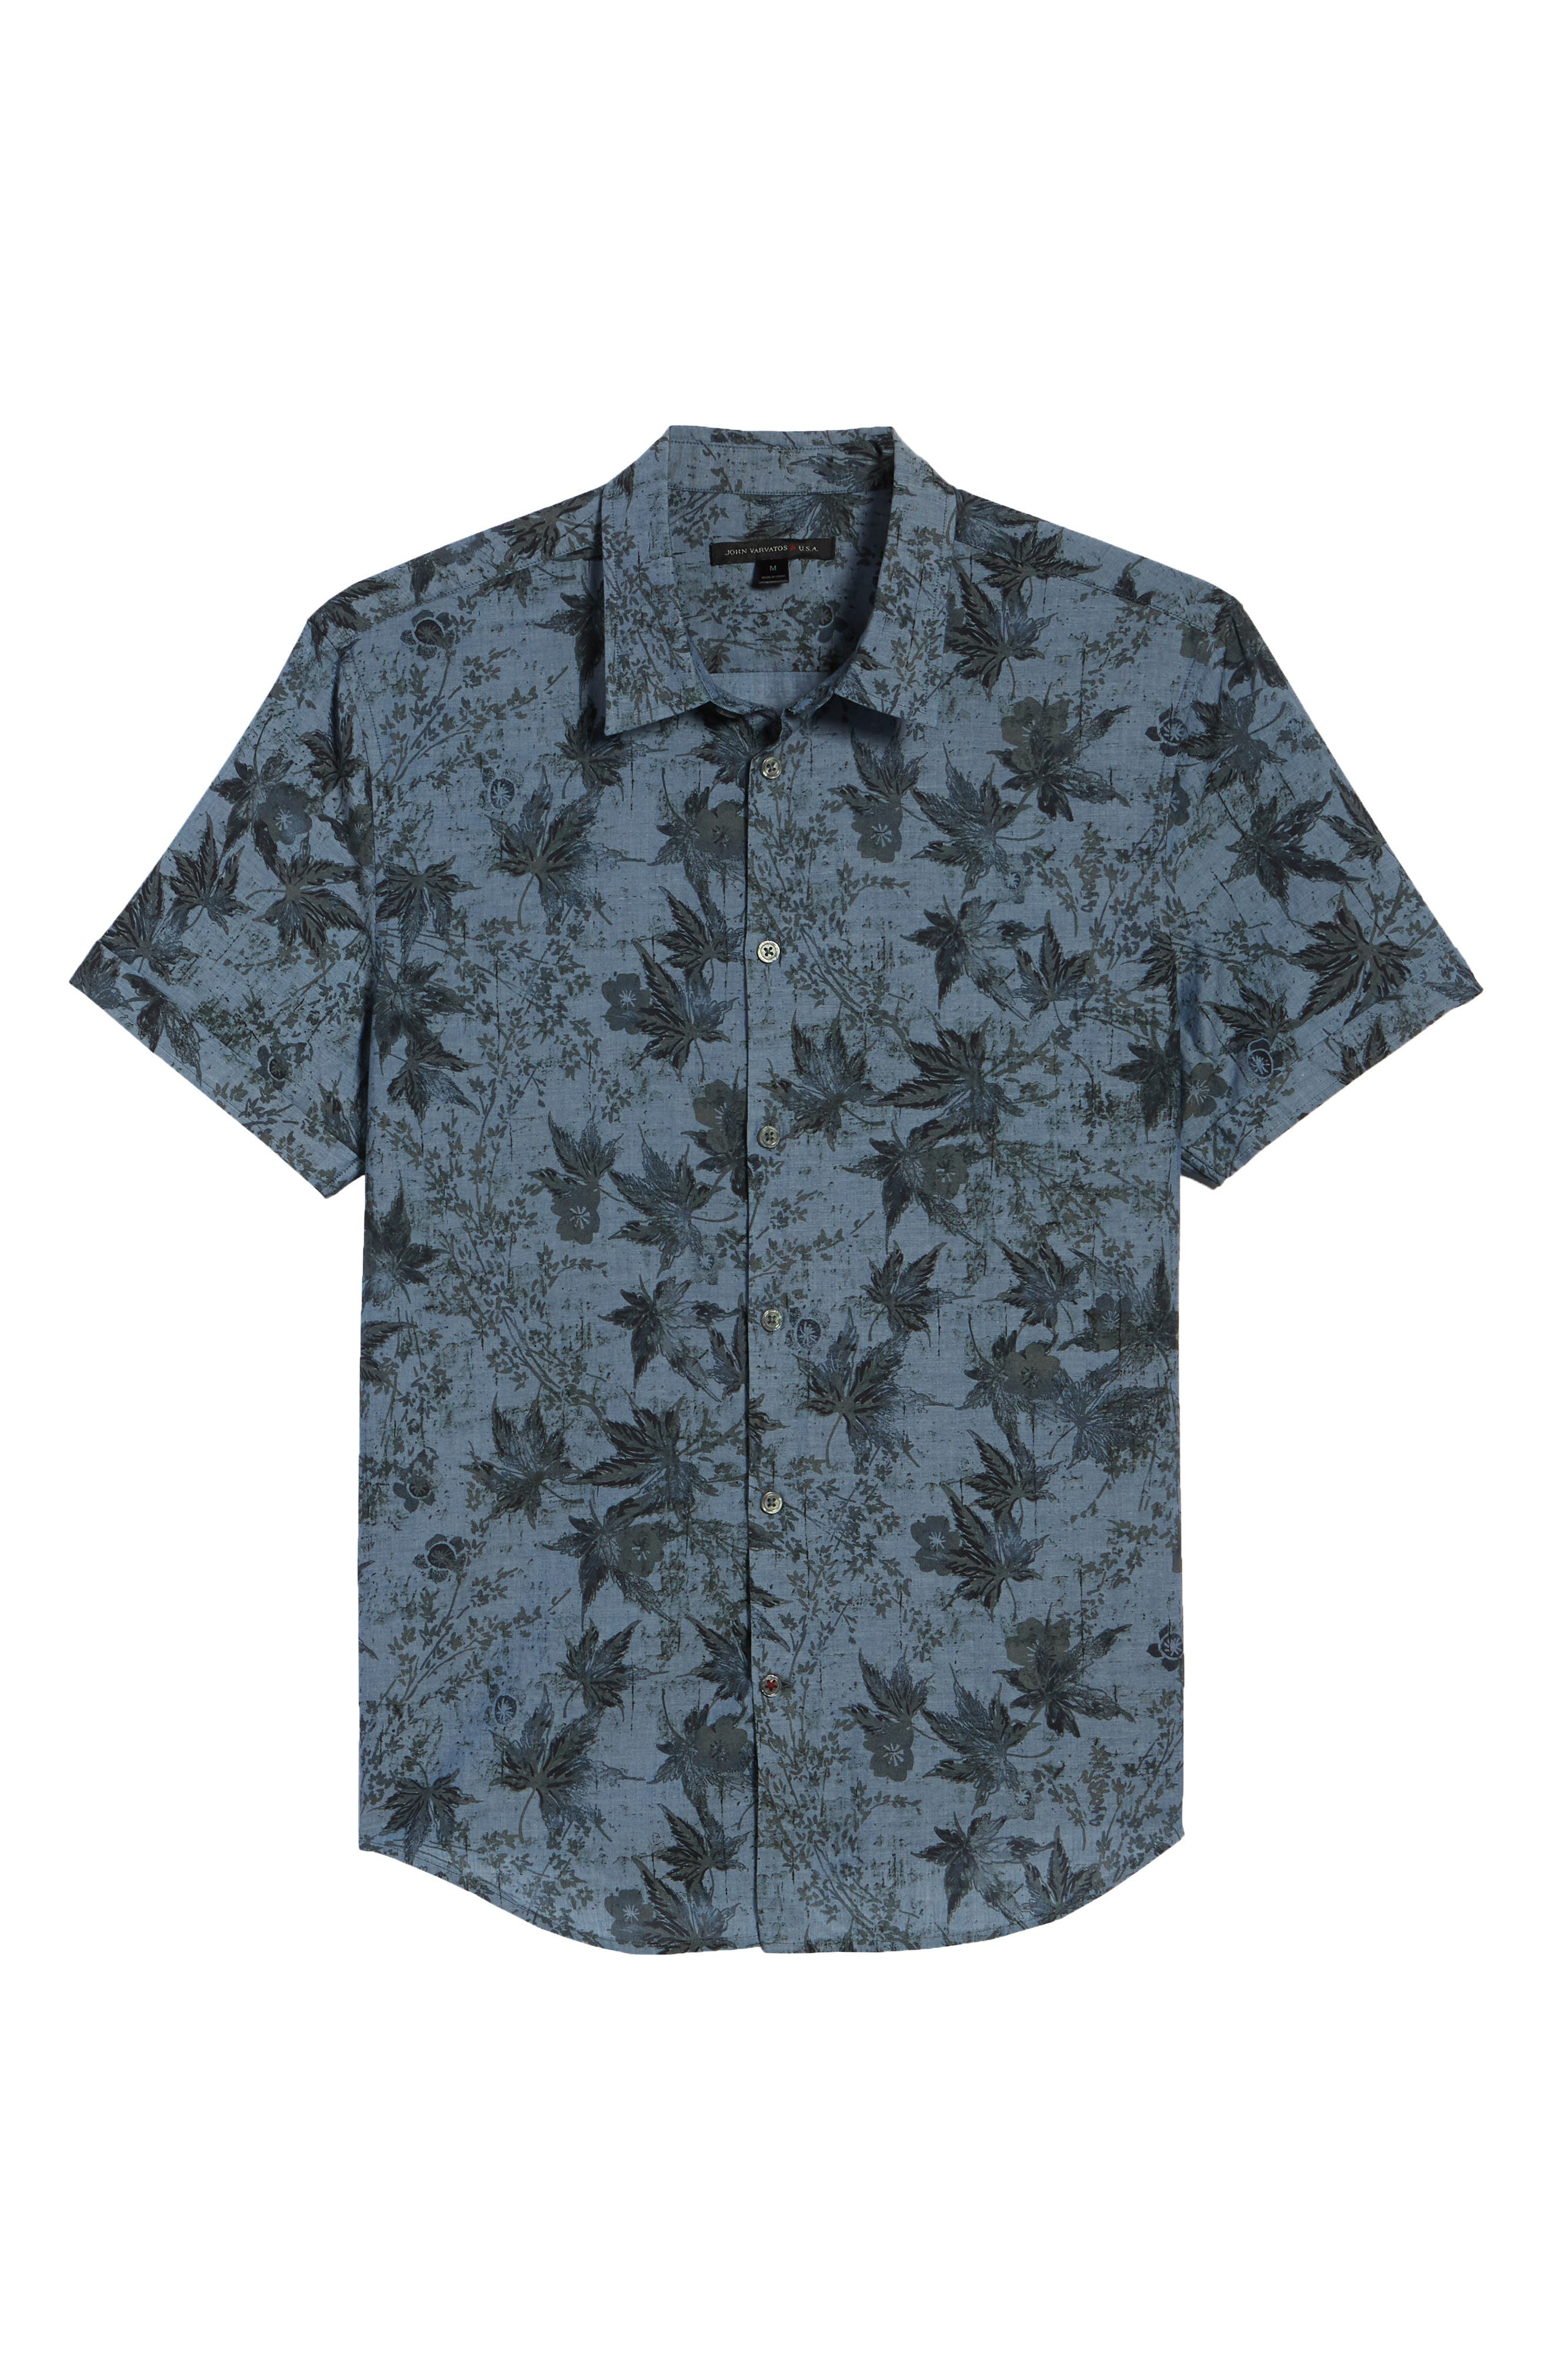 Regular Fit Print Short Sleeve Sport Shirt,                             Alternate thumbnail 6, color,                             Indigo